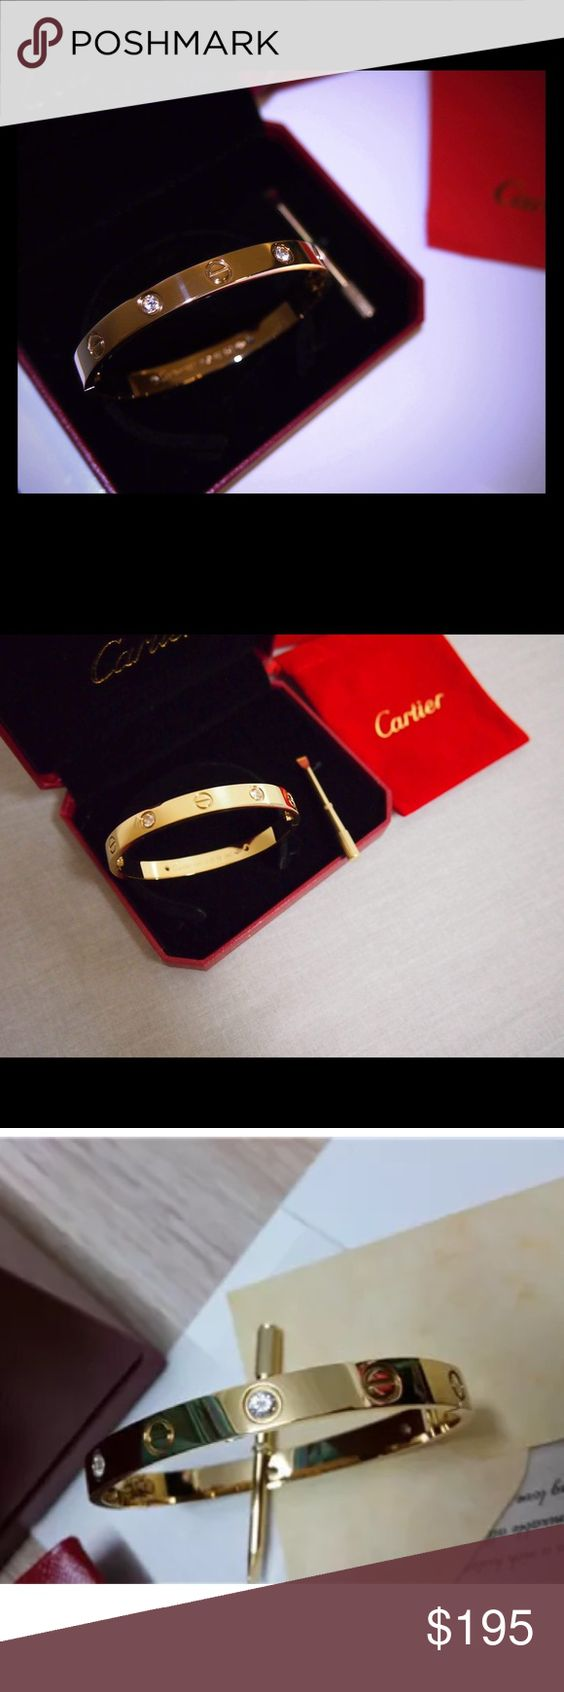 Cartier love bracelet 18k new Amazing Cartier love bracelet 18k over sterling 100%, dust bag for cleaning, box,shopping bag,screwdriver and paper work You will love it Cartier Jewelry Bracelets